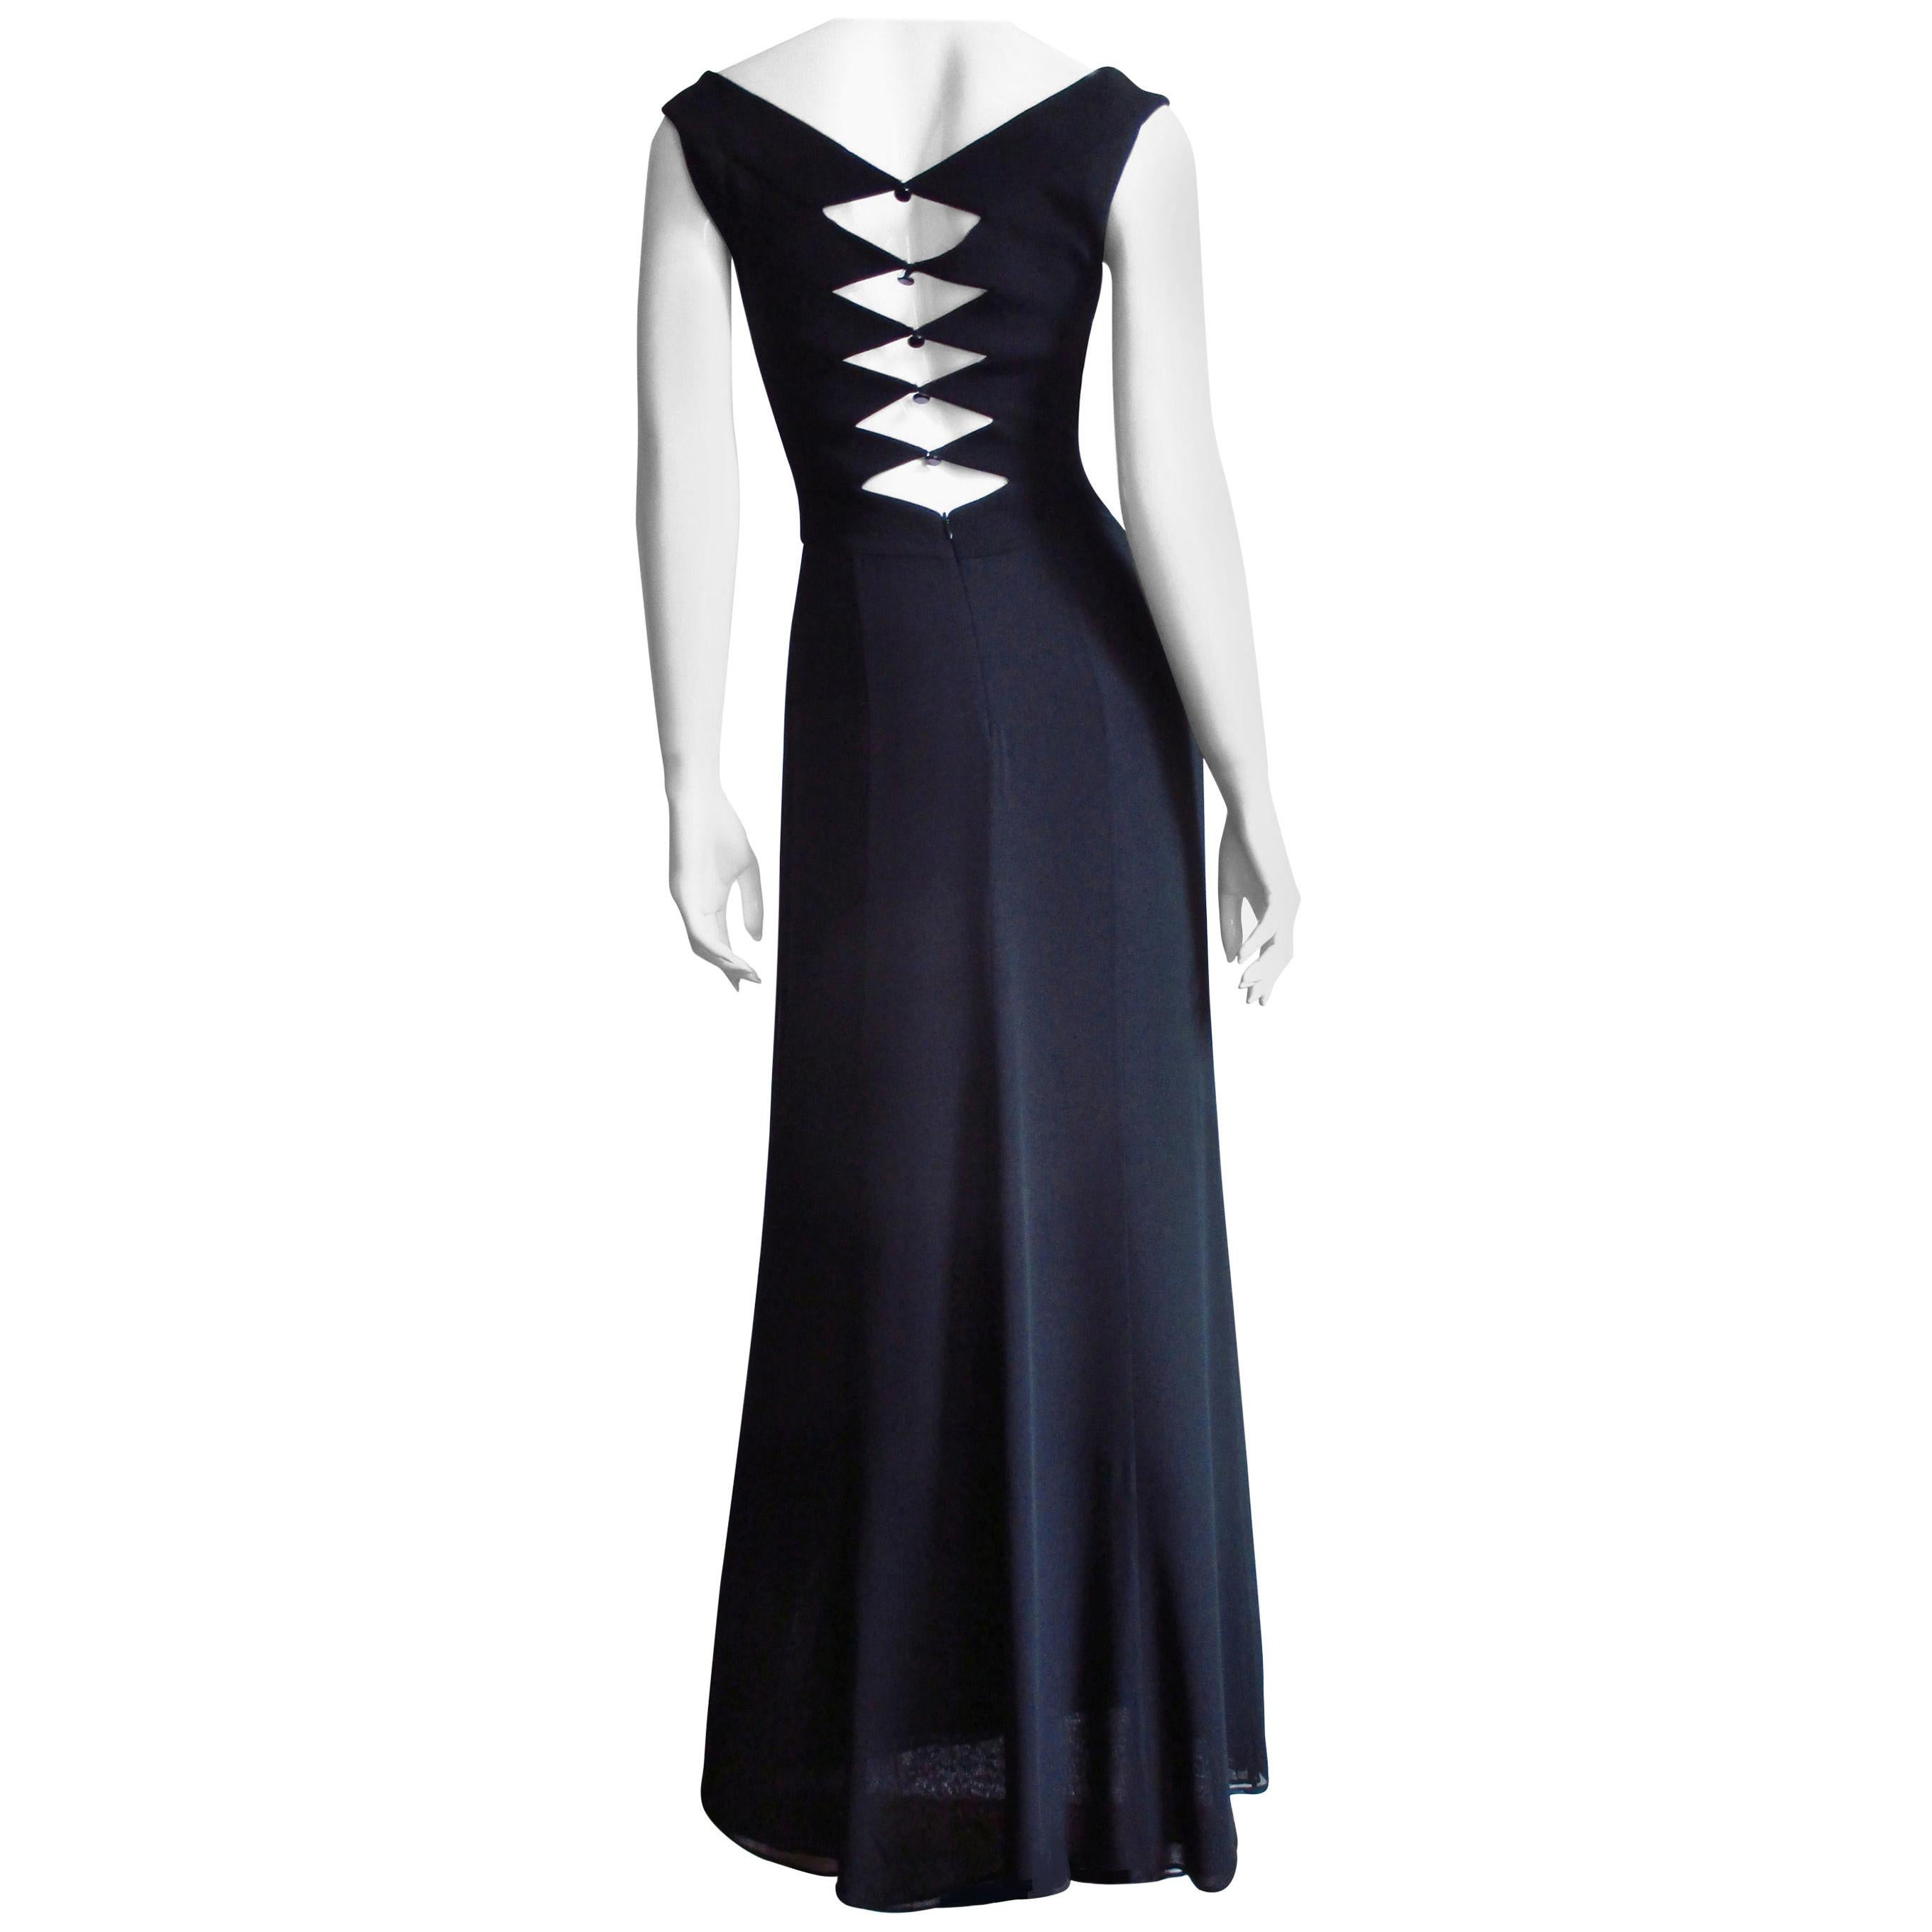 Herve Leger Maxi Dress with Back Cut outs